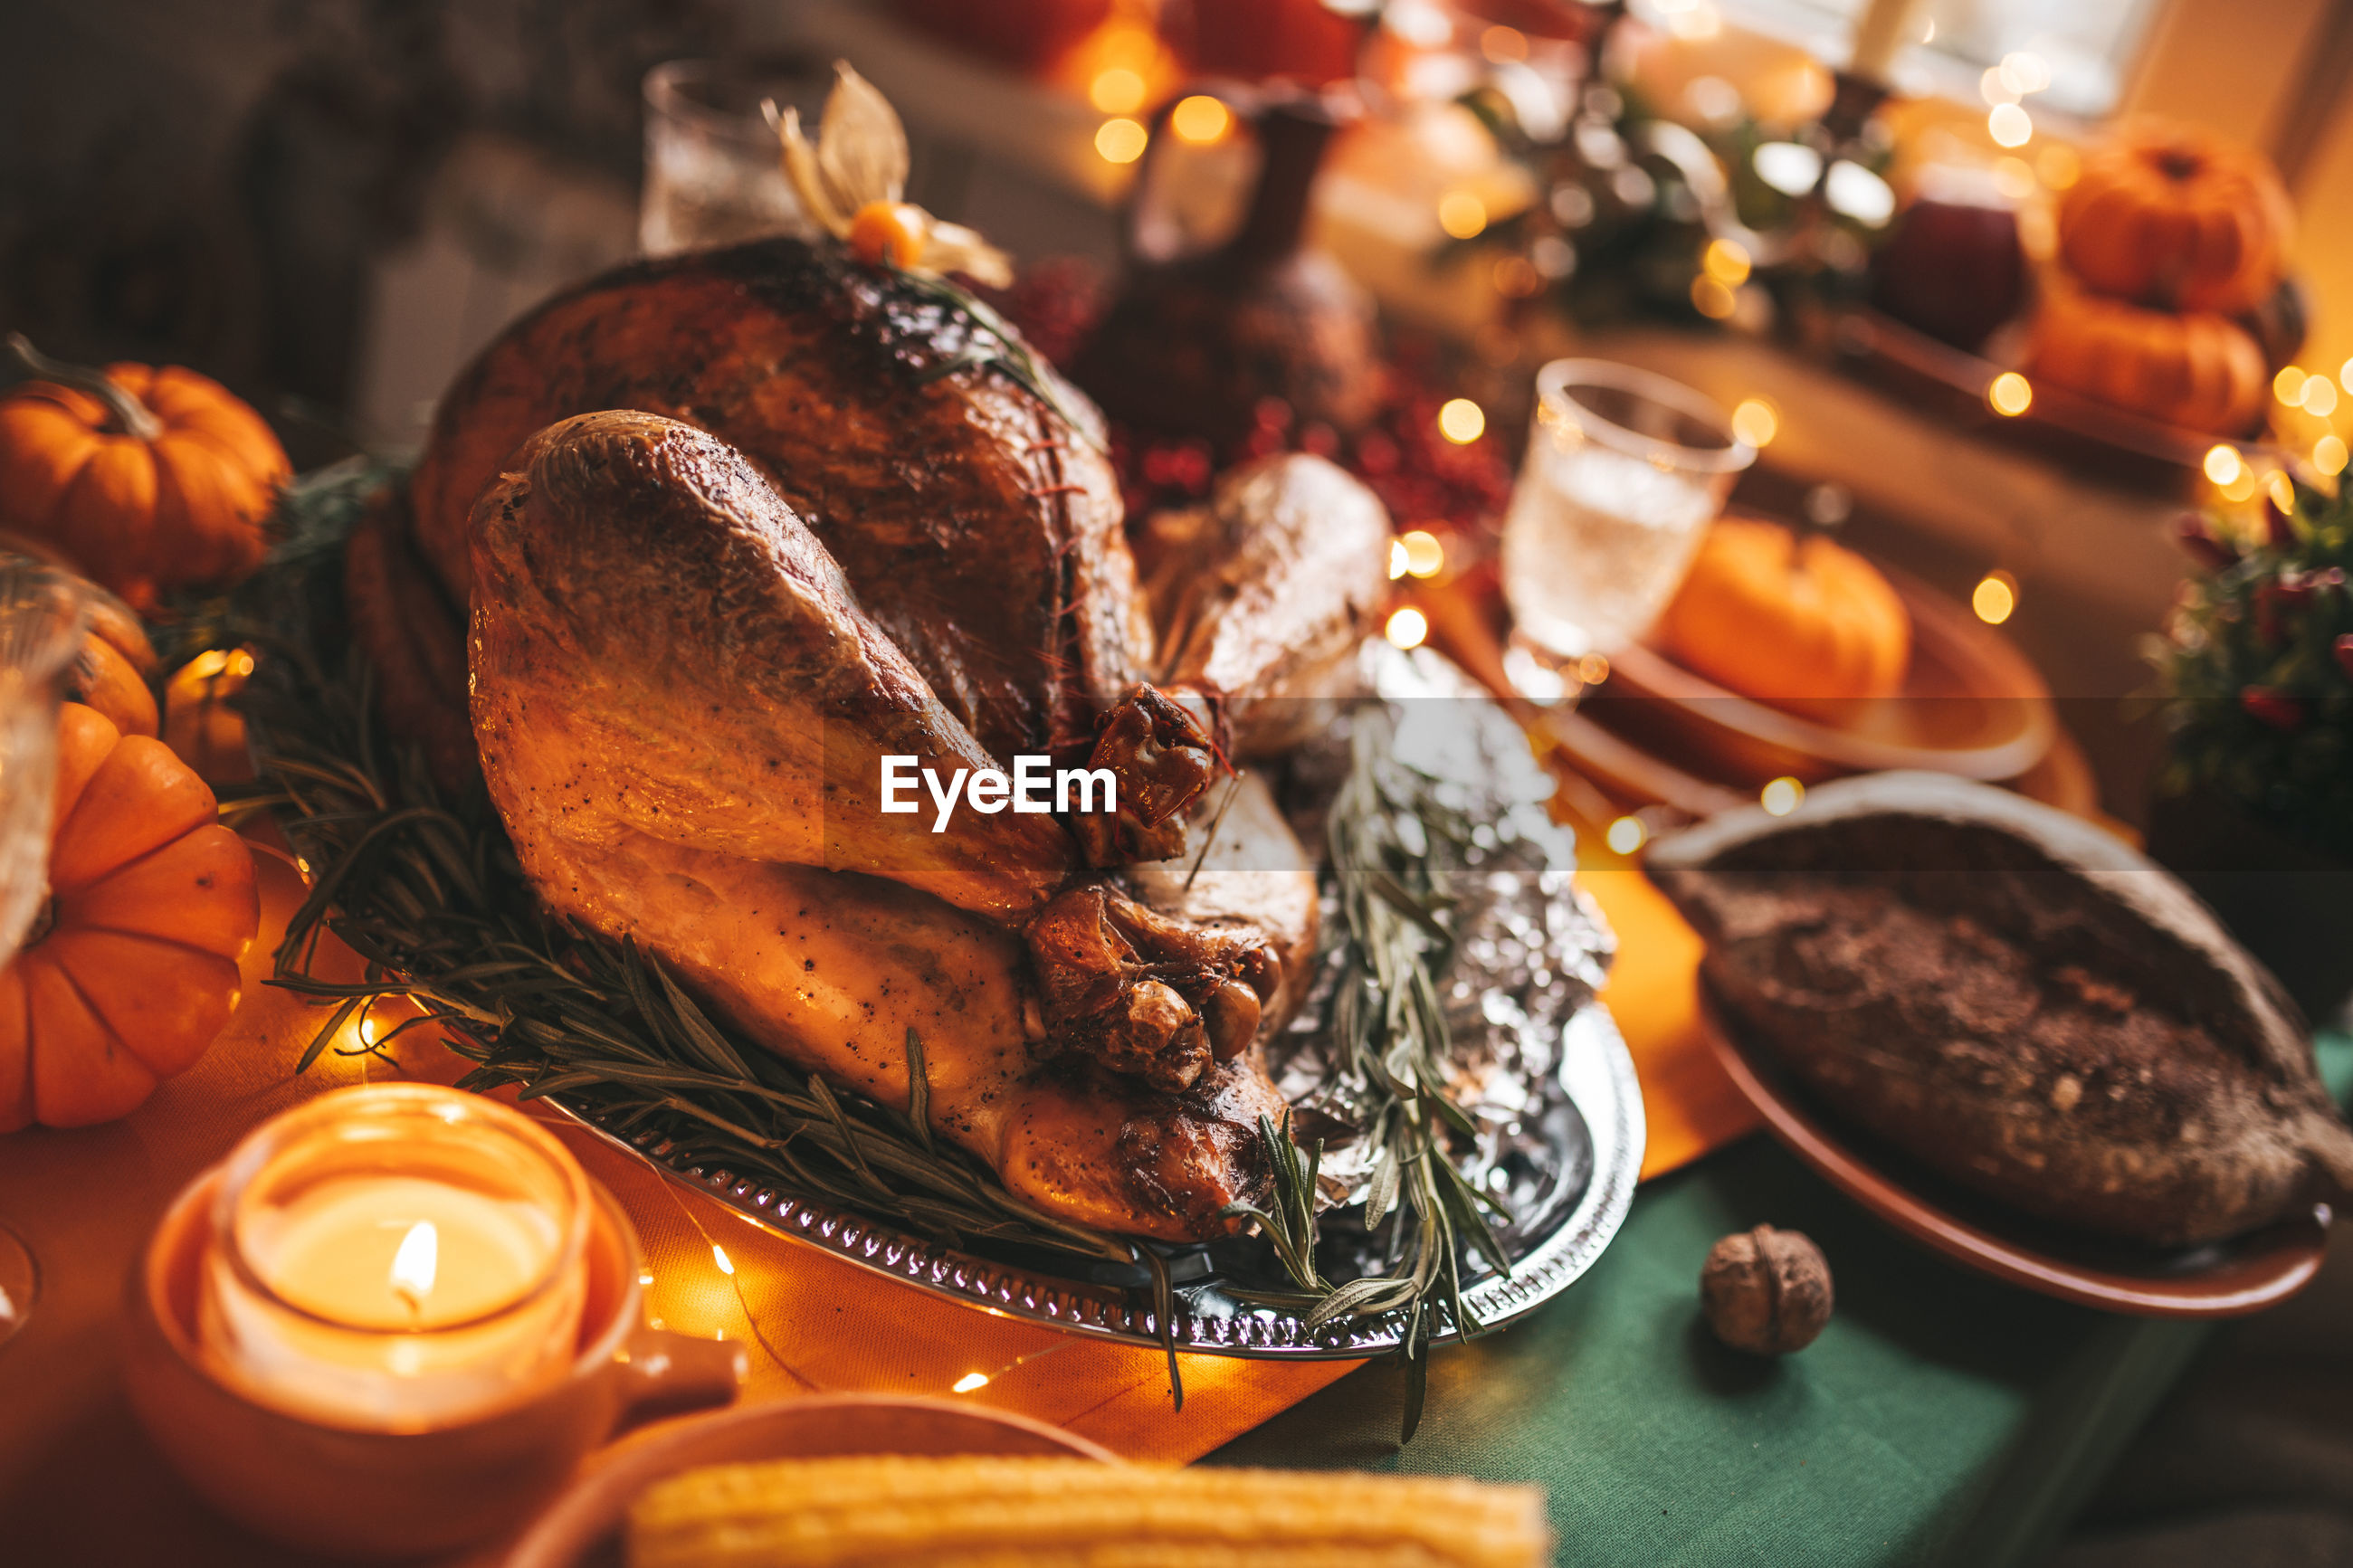 HIGH ANGLE VIEW OF FOOD IN CHRISTMAS